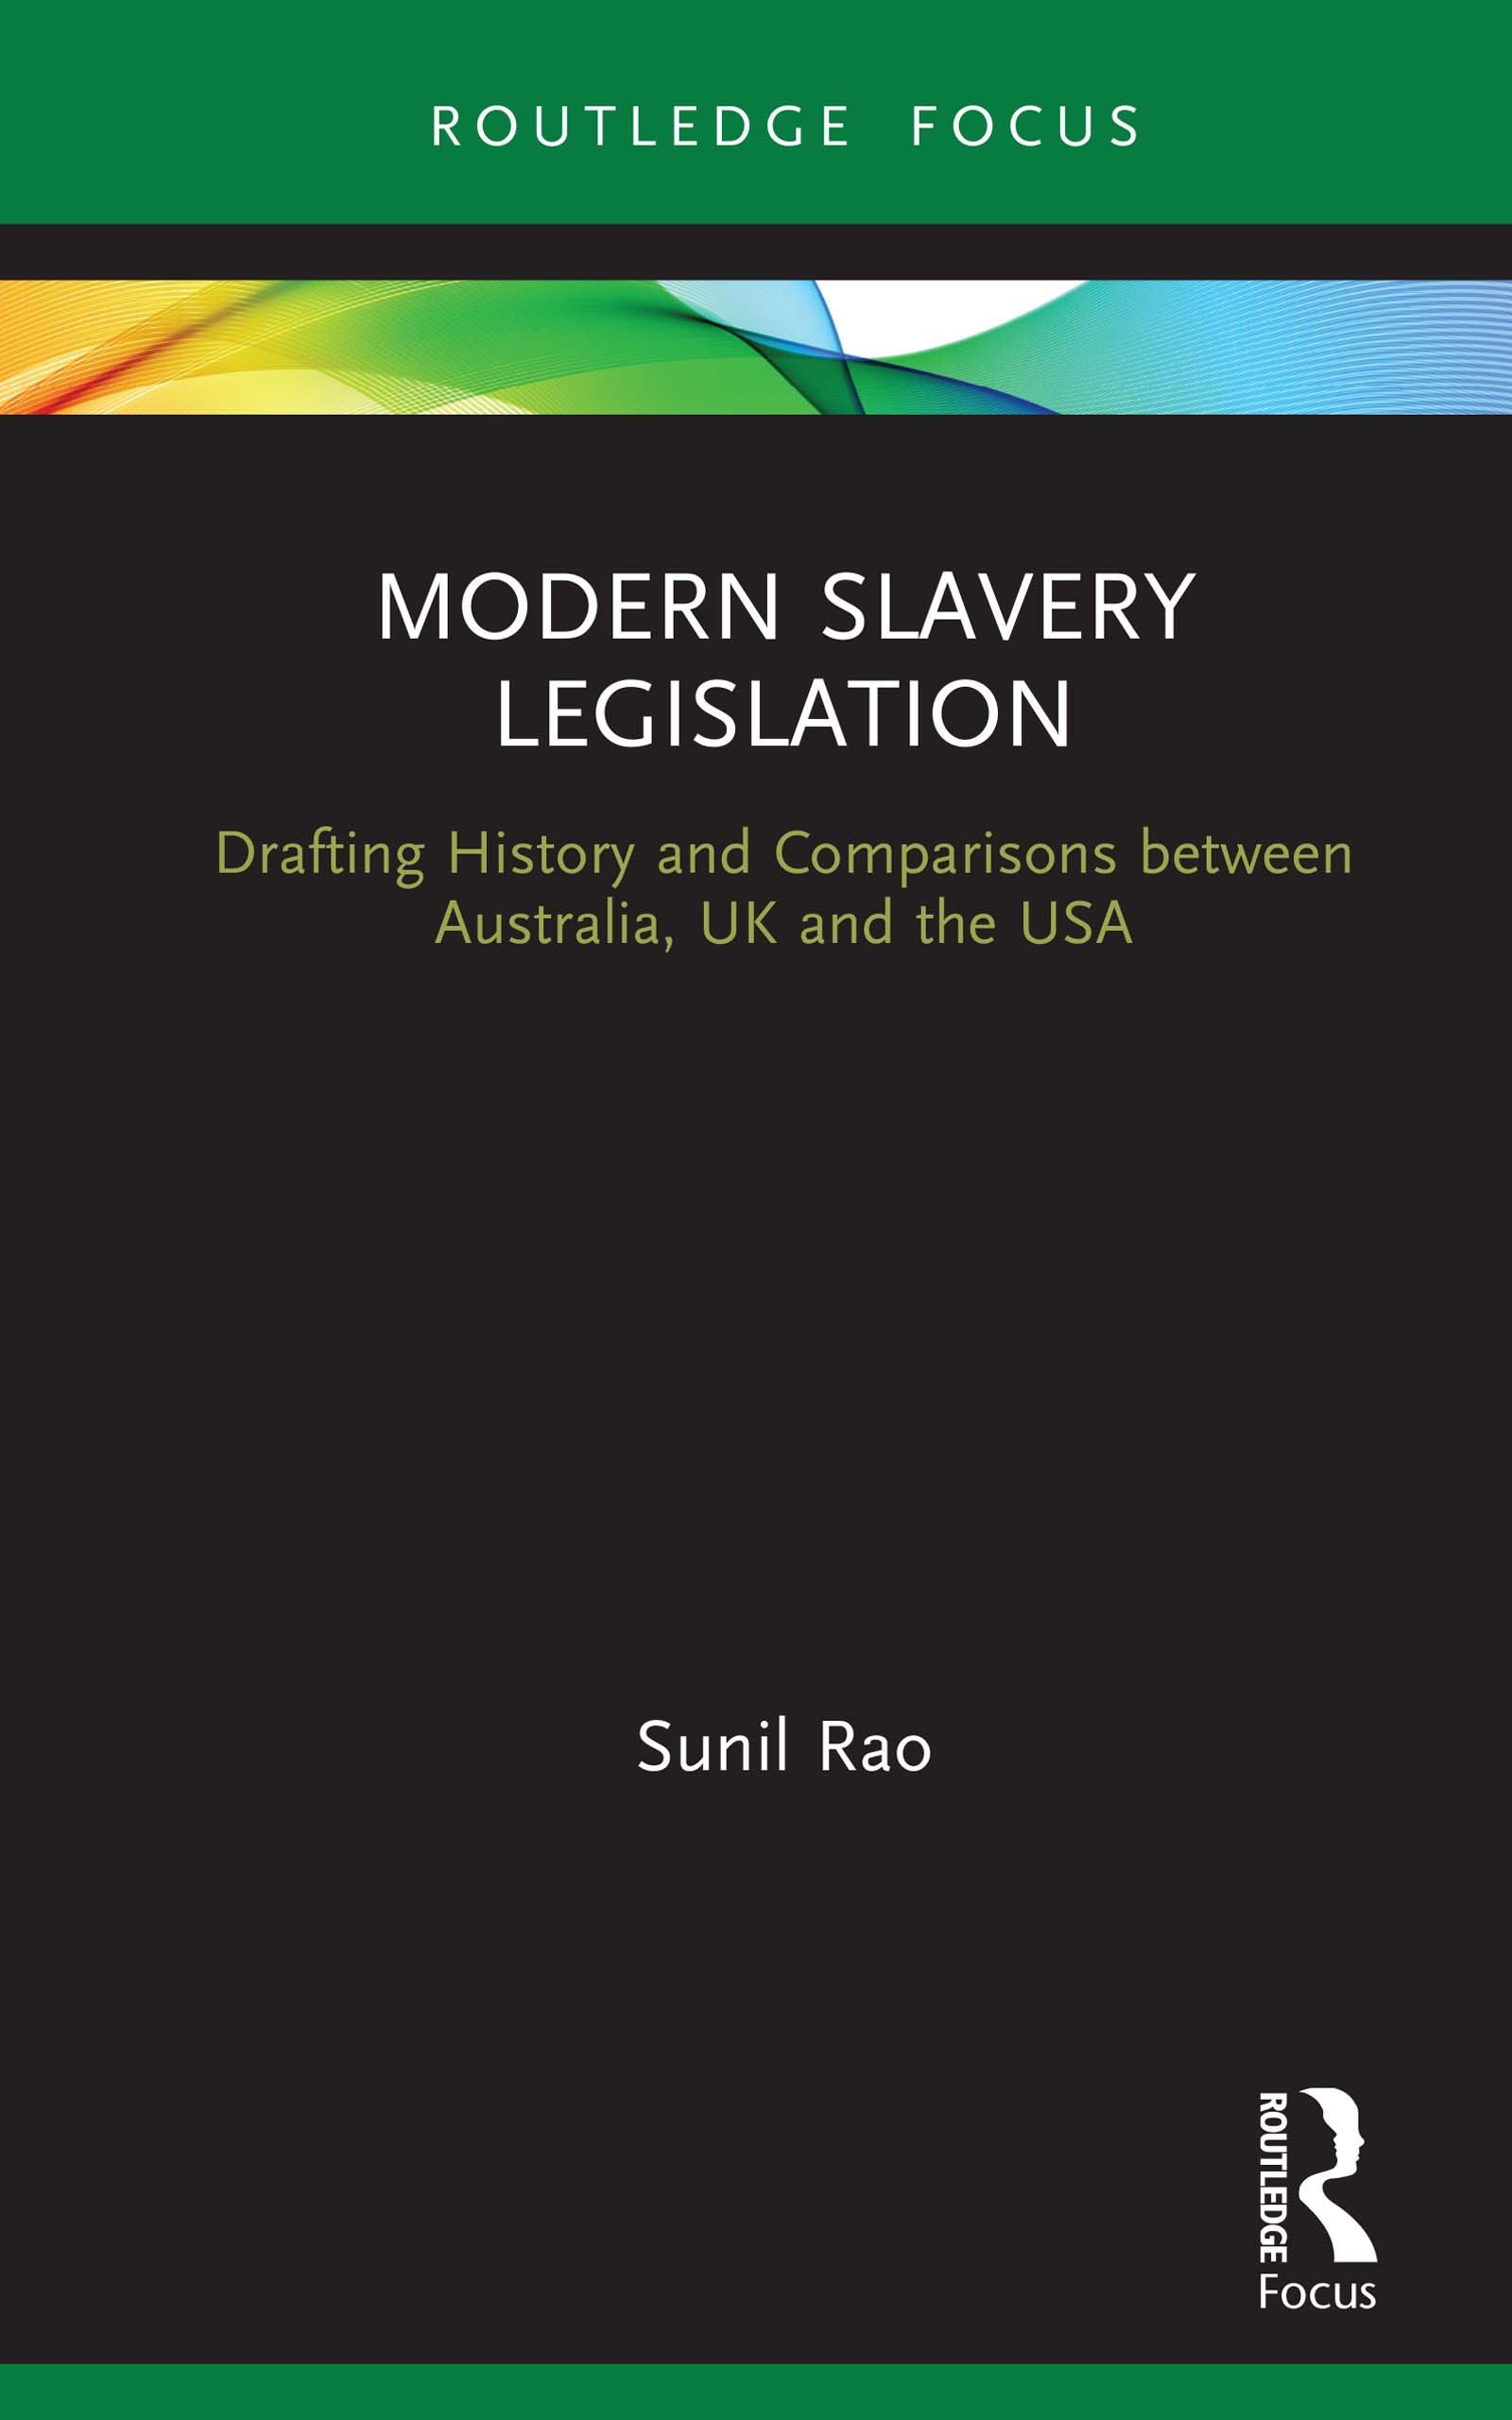 Modern Slavery Legislation: Drafting History and Comparisons between Australia, UK and the USA book cover